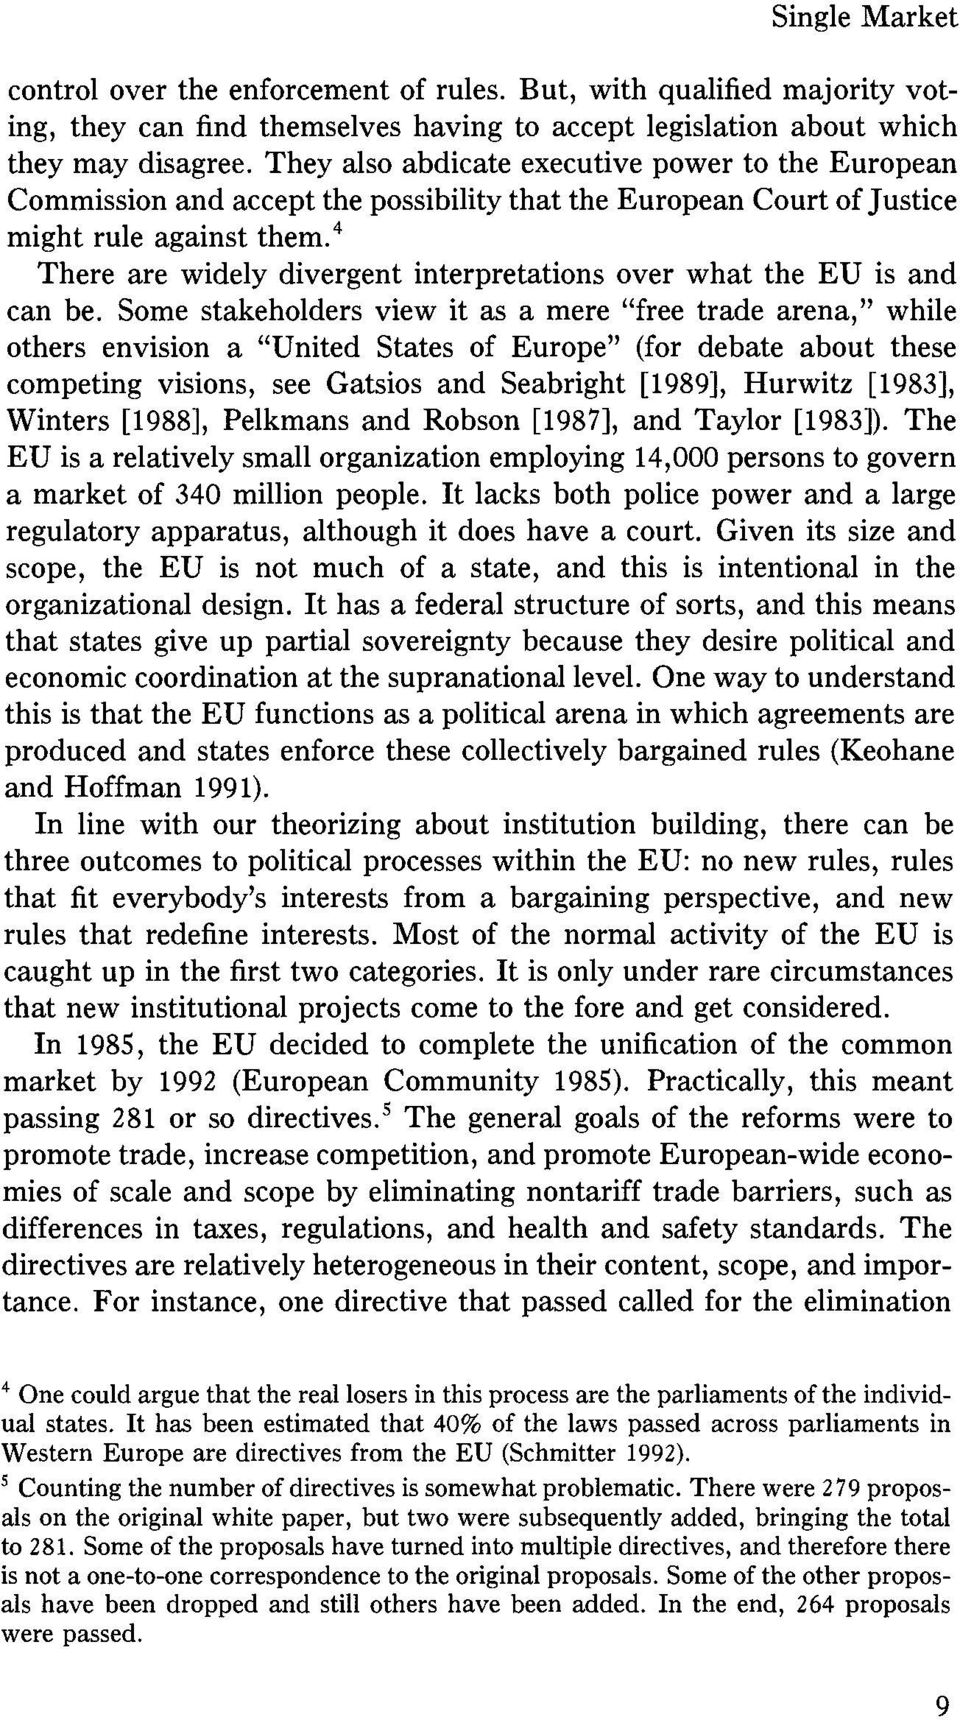 4 There are widely divergent interpretations over what the EU is and can be.